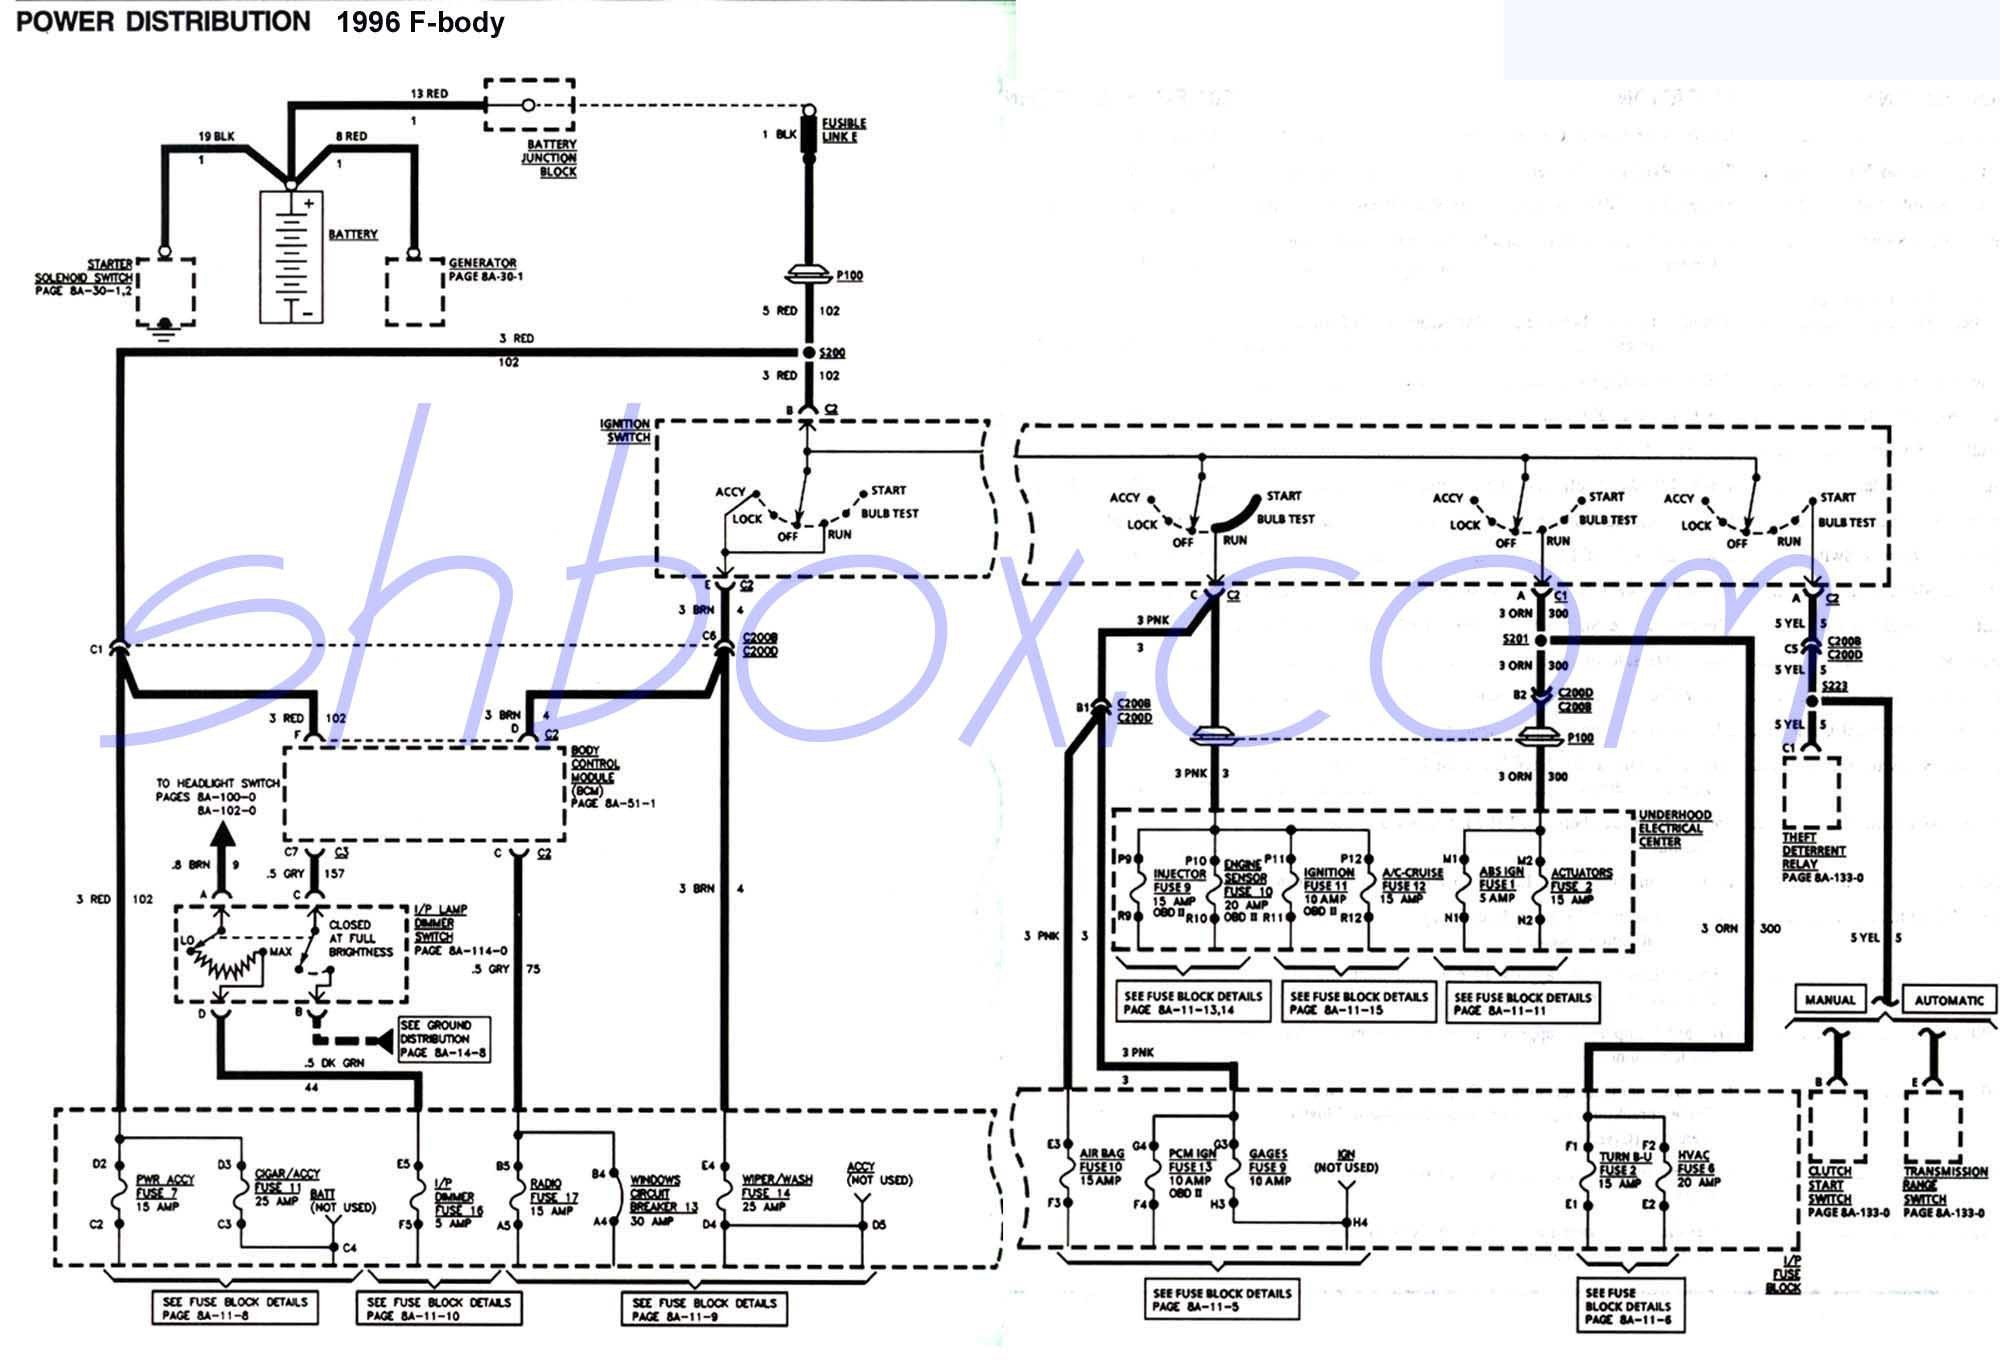 Car Electrical Wiring Diagram Awesome Ignition Wiring Diagram Diagram Of Car Electrical Wiring Diagram